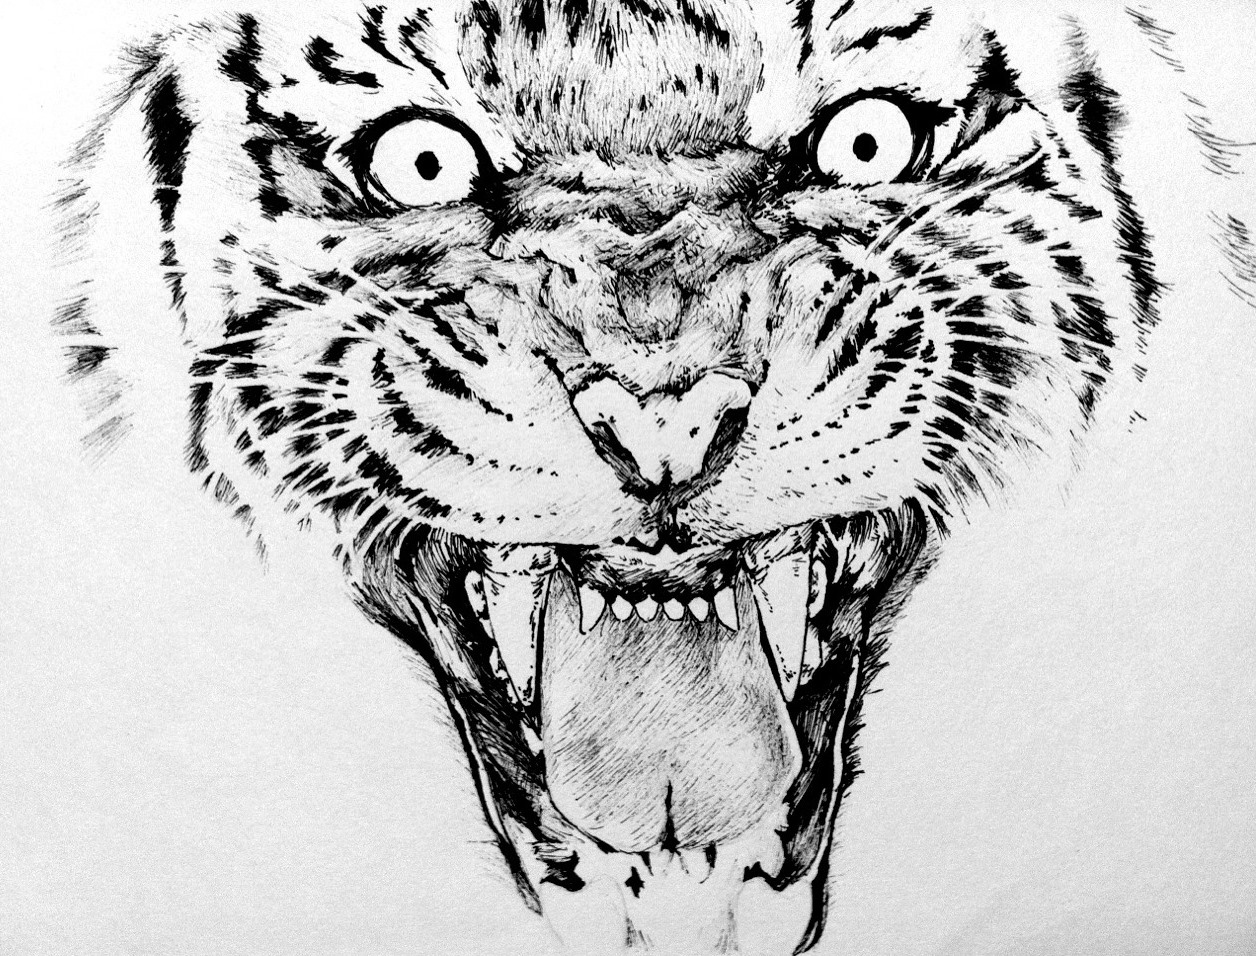 Line Drawing With Fineliner And Pencils : Tiger fineliner pen drawing by yun hui lee on deviantart